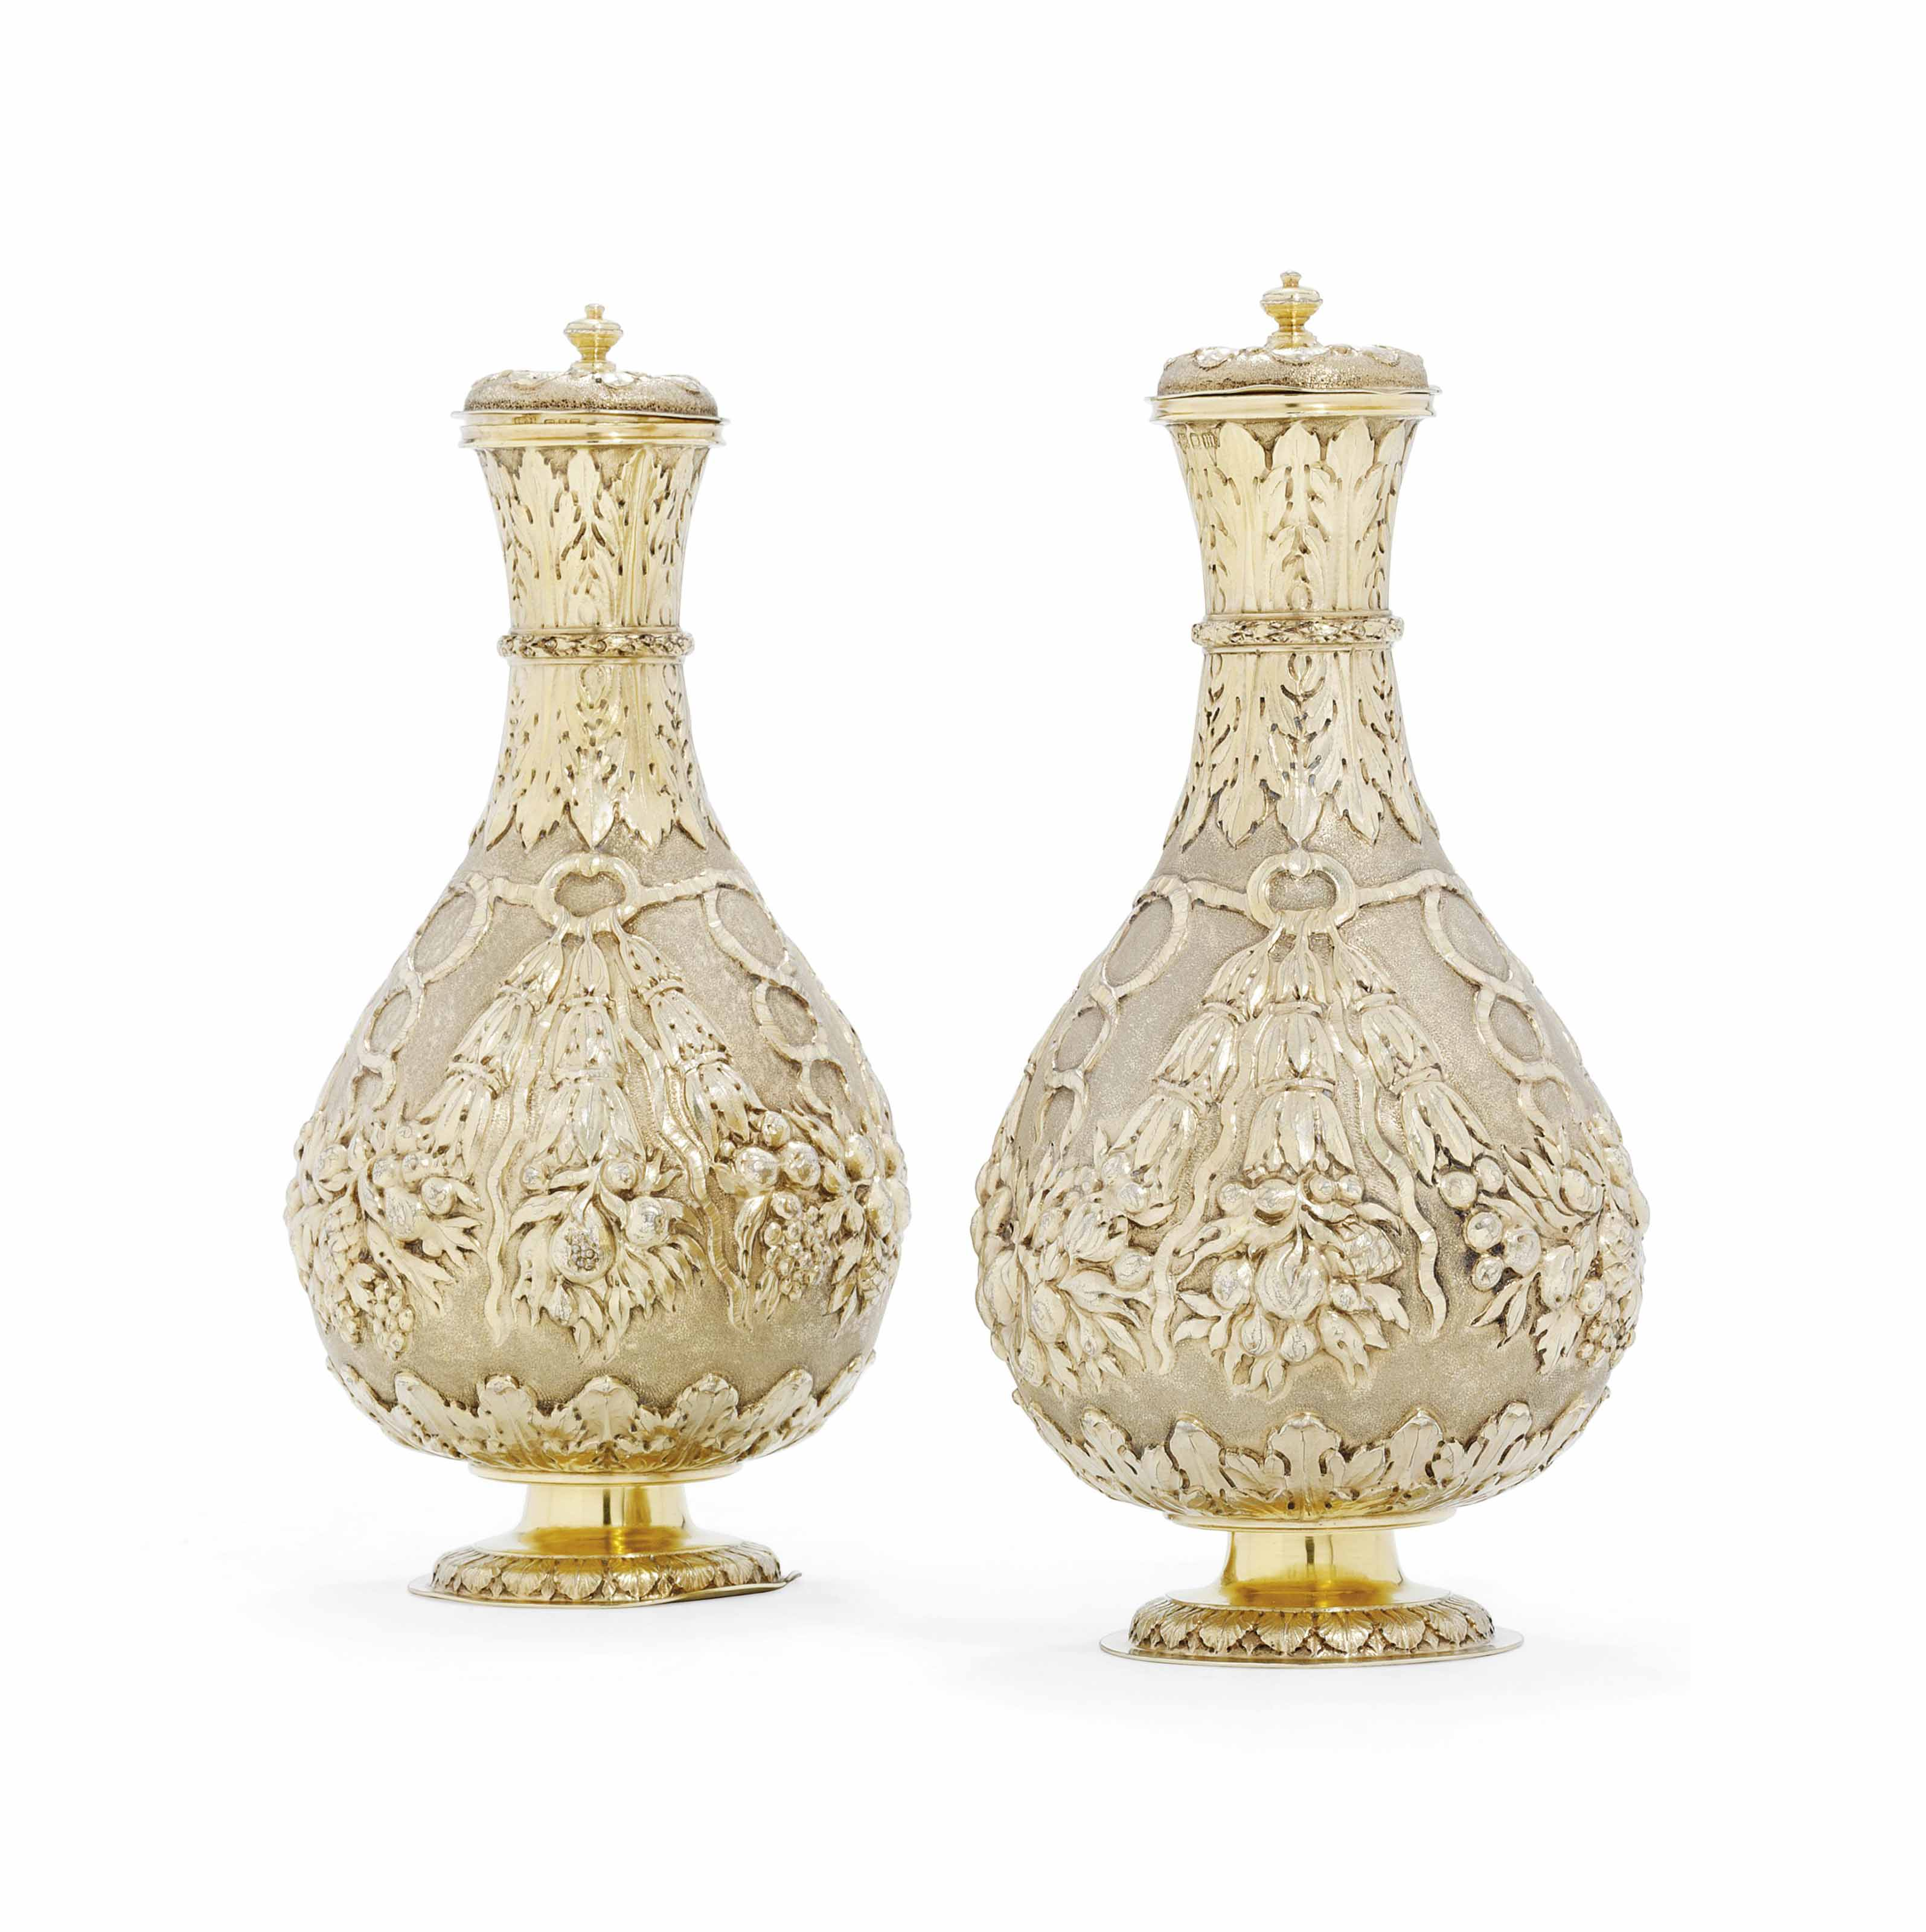 A PAIR OF GEORGE V SILVER-GILT FURNISHING VASES